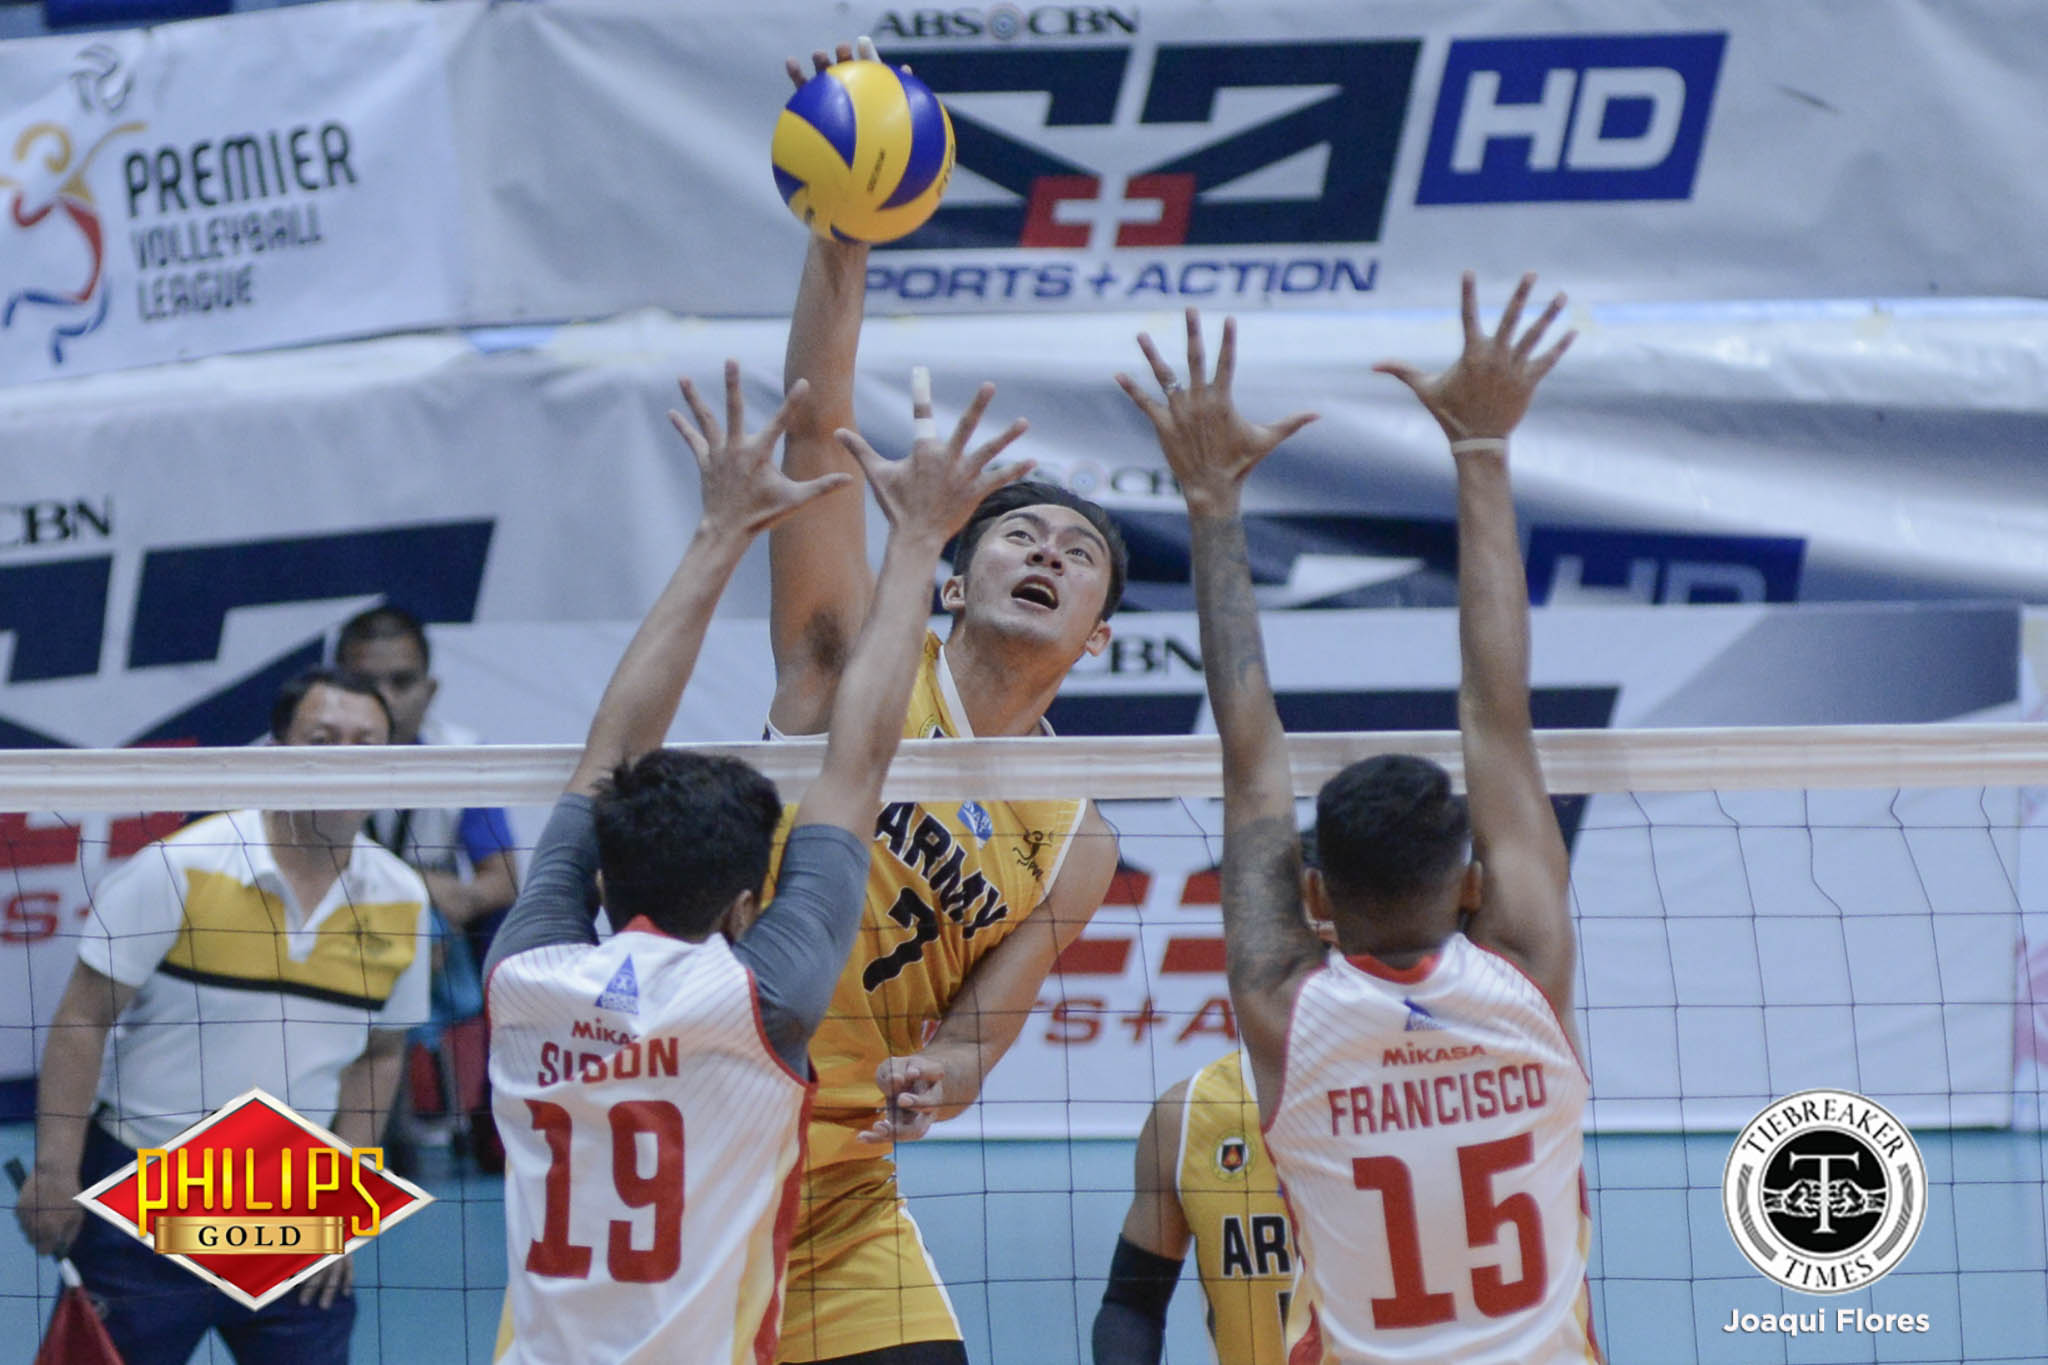 Tiebreaker Times Army rolls past Cafe Lupe to even slate News PVL Volleyball  Timothy Tajanlangit Romnick Rico Rod Palmero Rico De Guzman Philippine Army Troopers John Millete Jayvee Sumagaysay Cafe Lupe Sunrisers 2017 PVL Season 2017 PVL Men's Open Conference